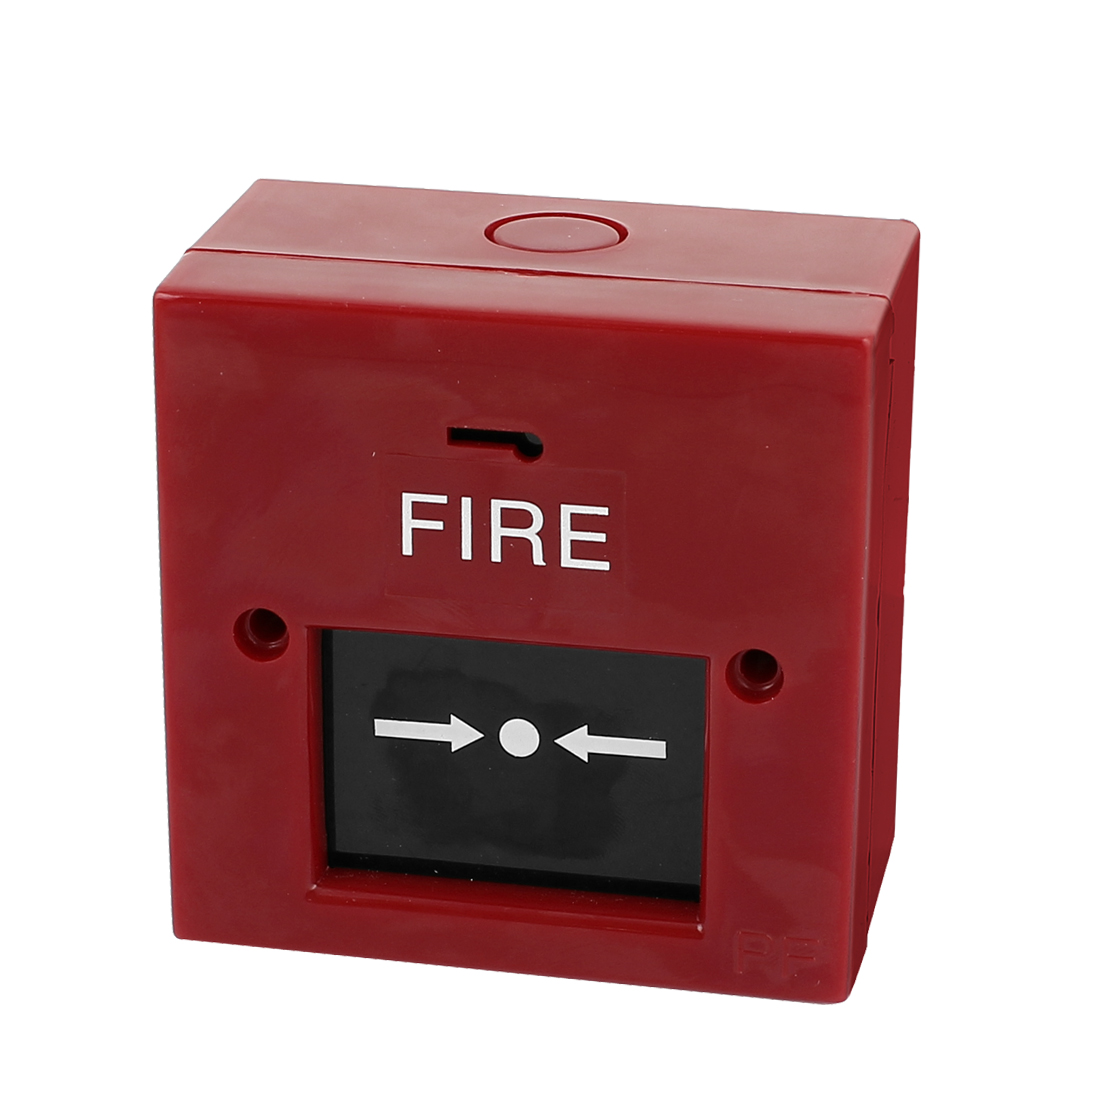 DC 24V Square Break Glass Manual Call Points Fire Alarm Pull Station